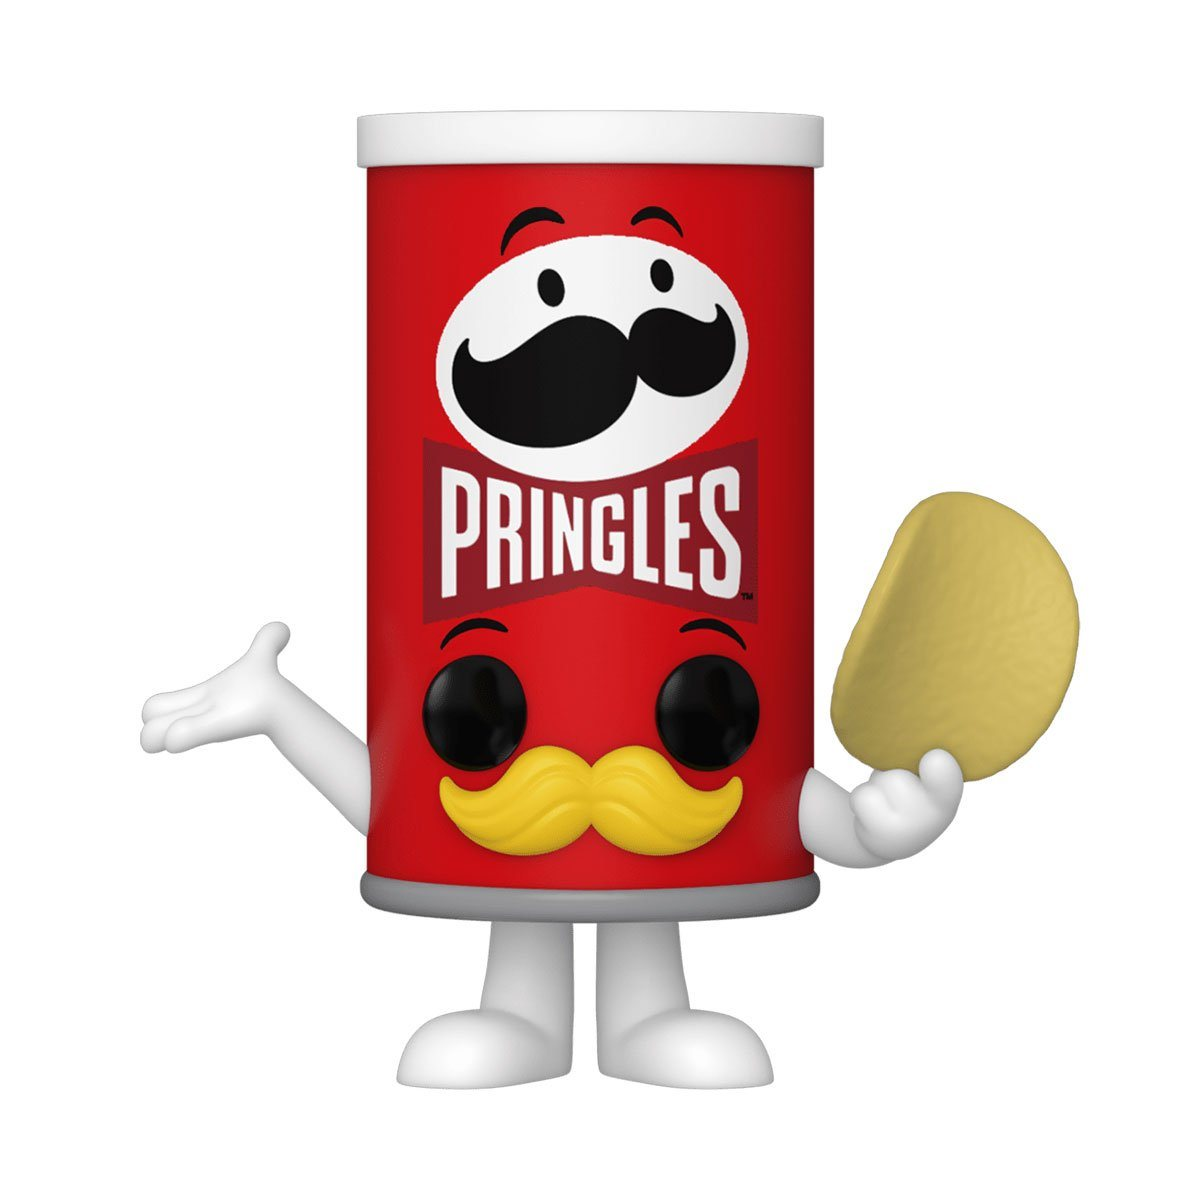 Pringles Can #106 Pringles Funko POP! Ad Icons [PRE-ORDER FOR ESTIMATED SUMMER 2021* DELIVERY] POP! Funko